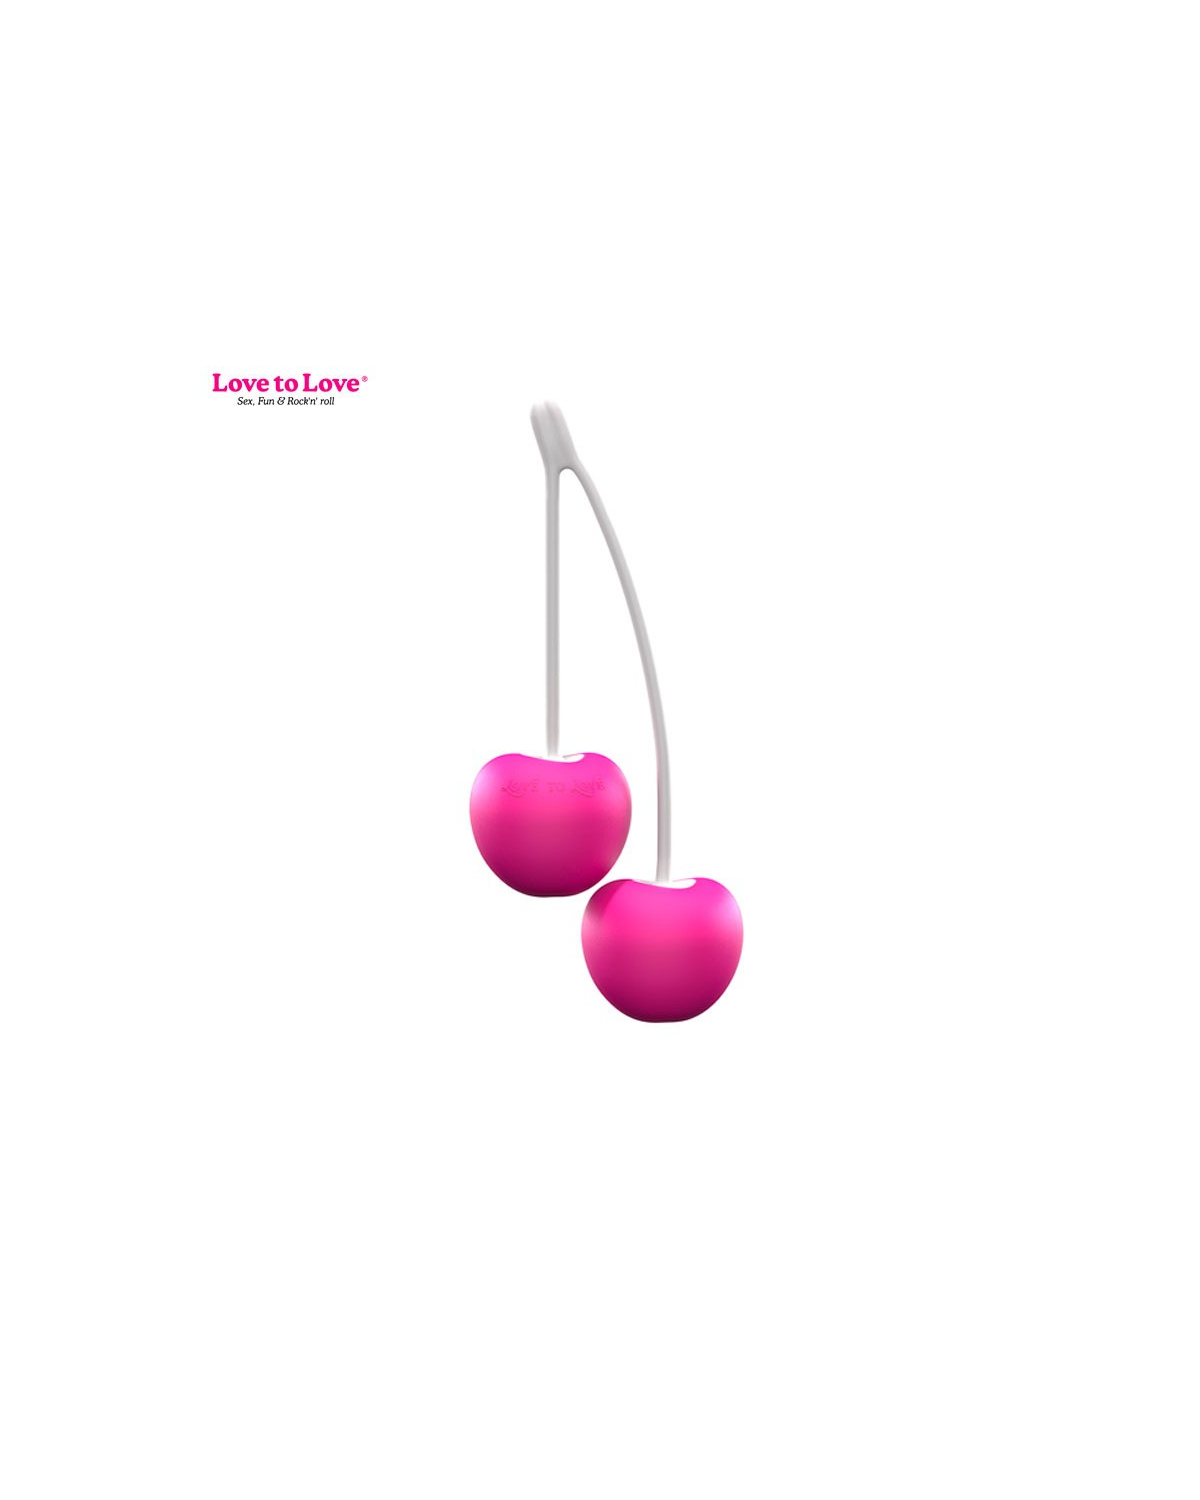 Boules-de-Geisha-love-to-love-Cerise-CHERRY-LOVE-01